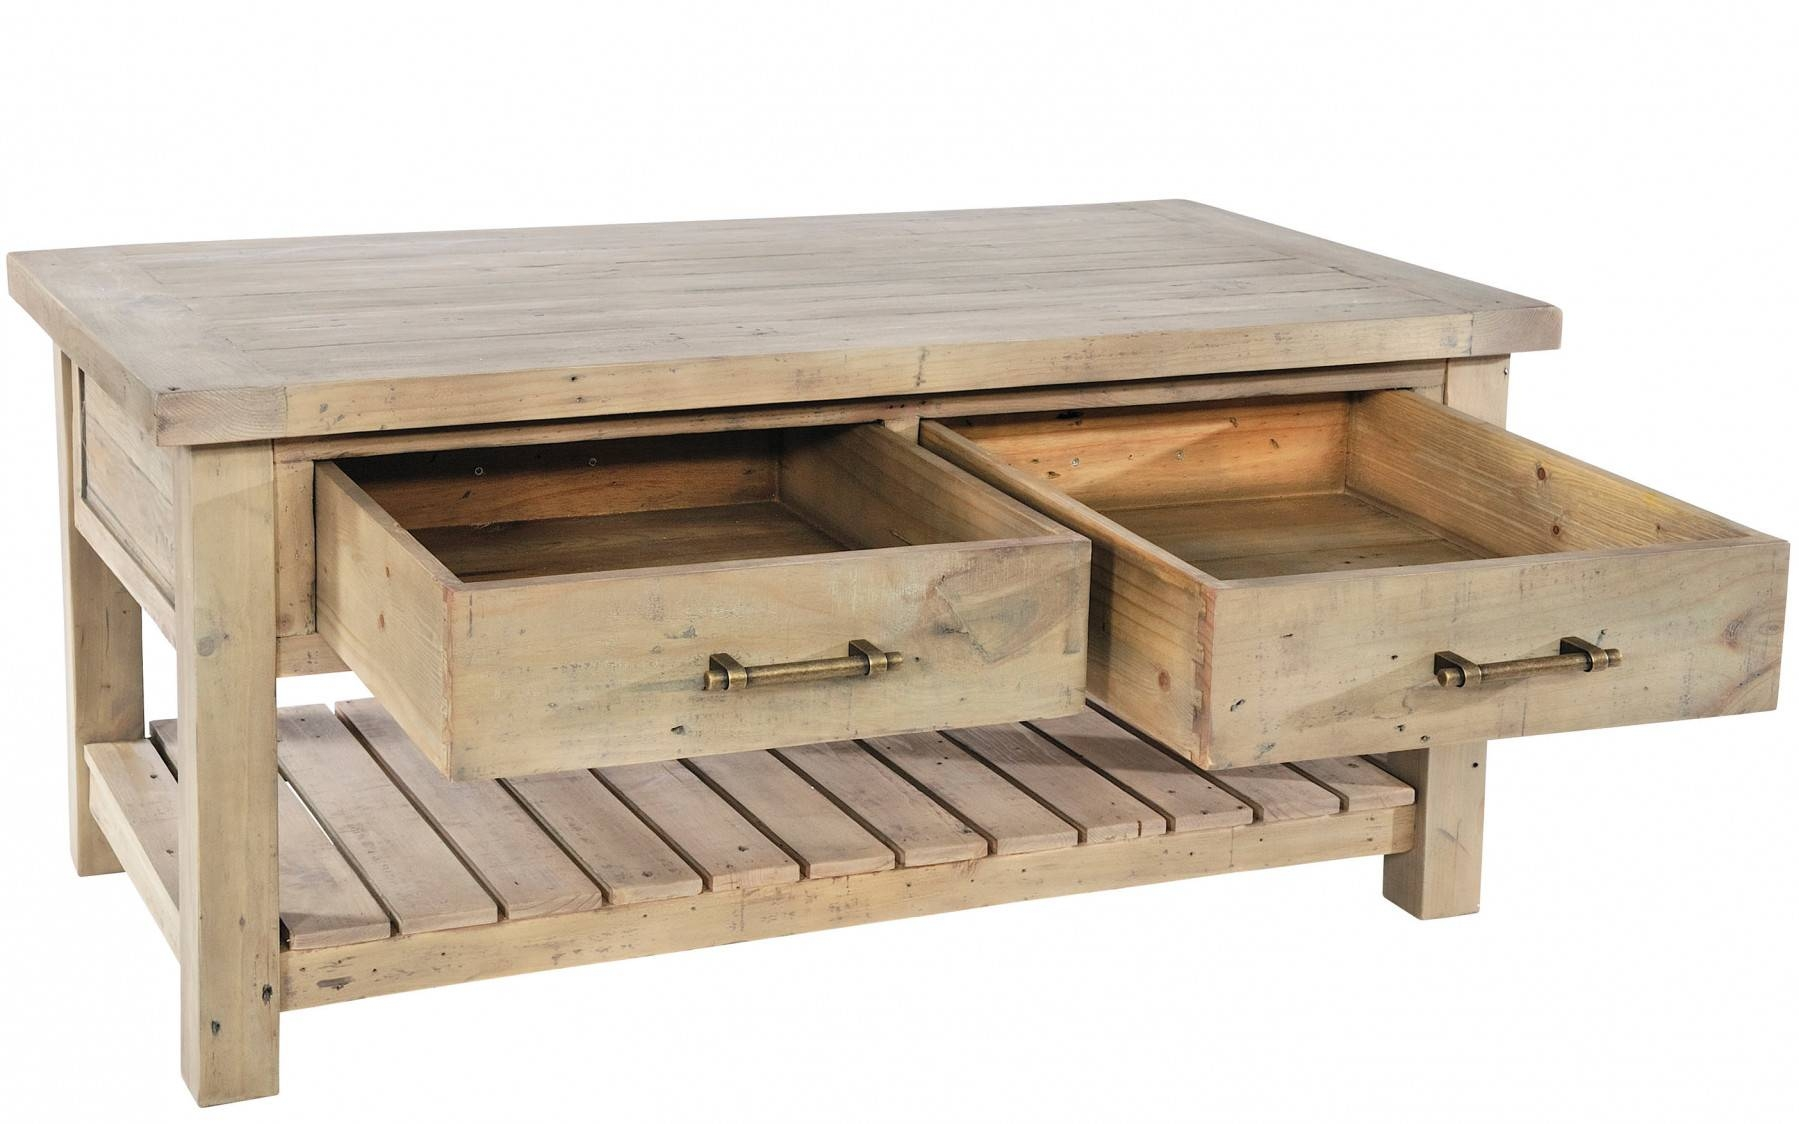 Saltash Reclaimed Pine Coffee Table | Buy At Kontenta Pertaining To Old Pine Coffee Tables (View 29 of 30)